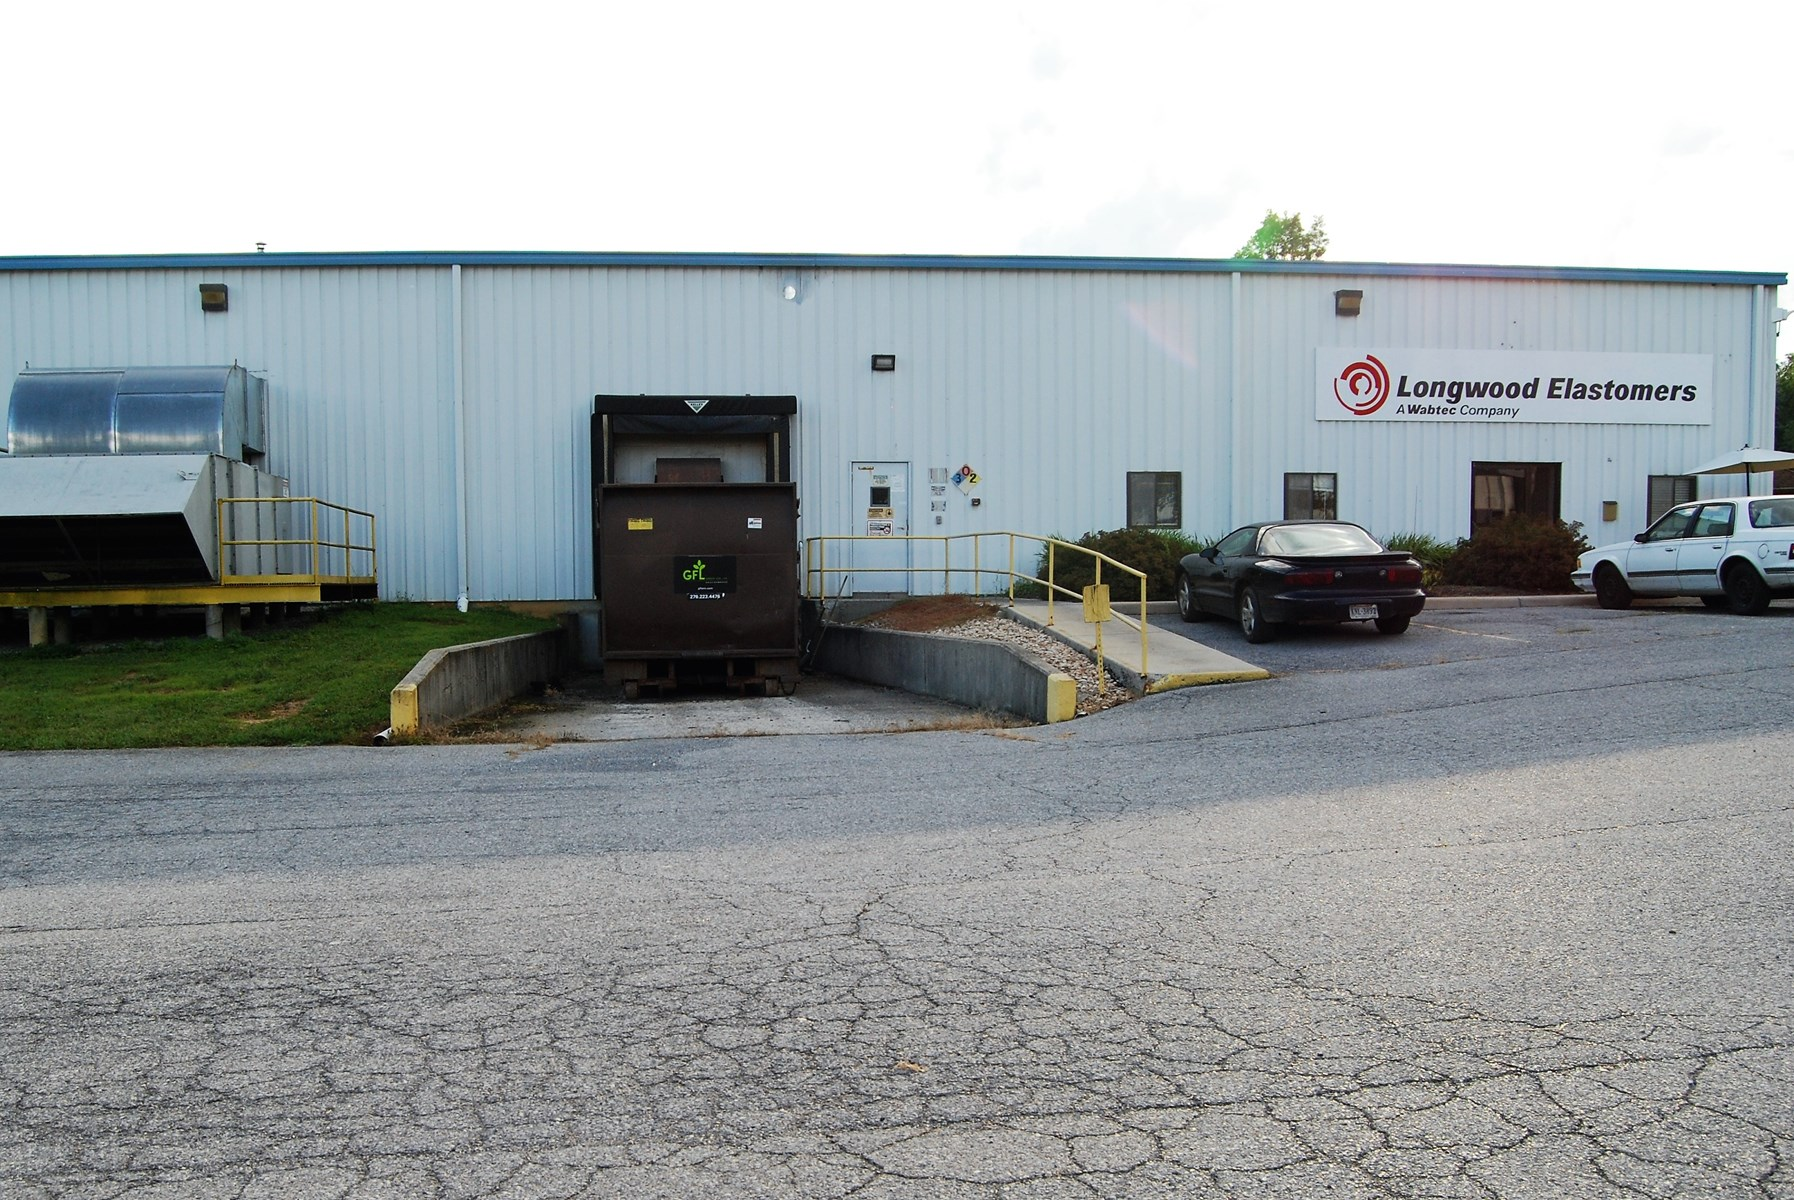 Commercial/Manufacturing Building For Sale In Wytheville, VA